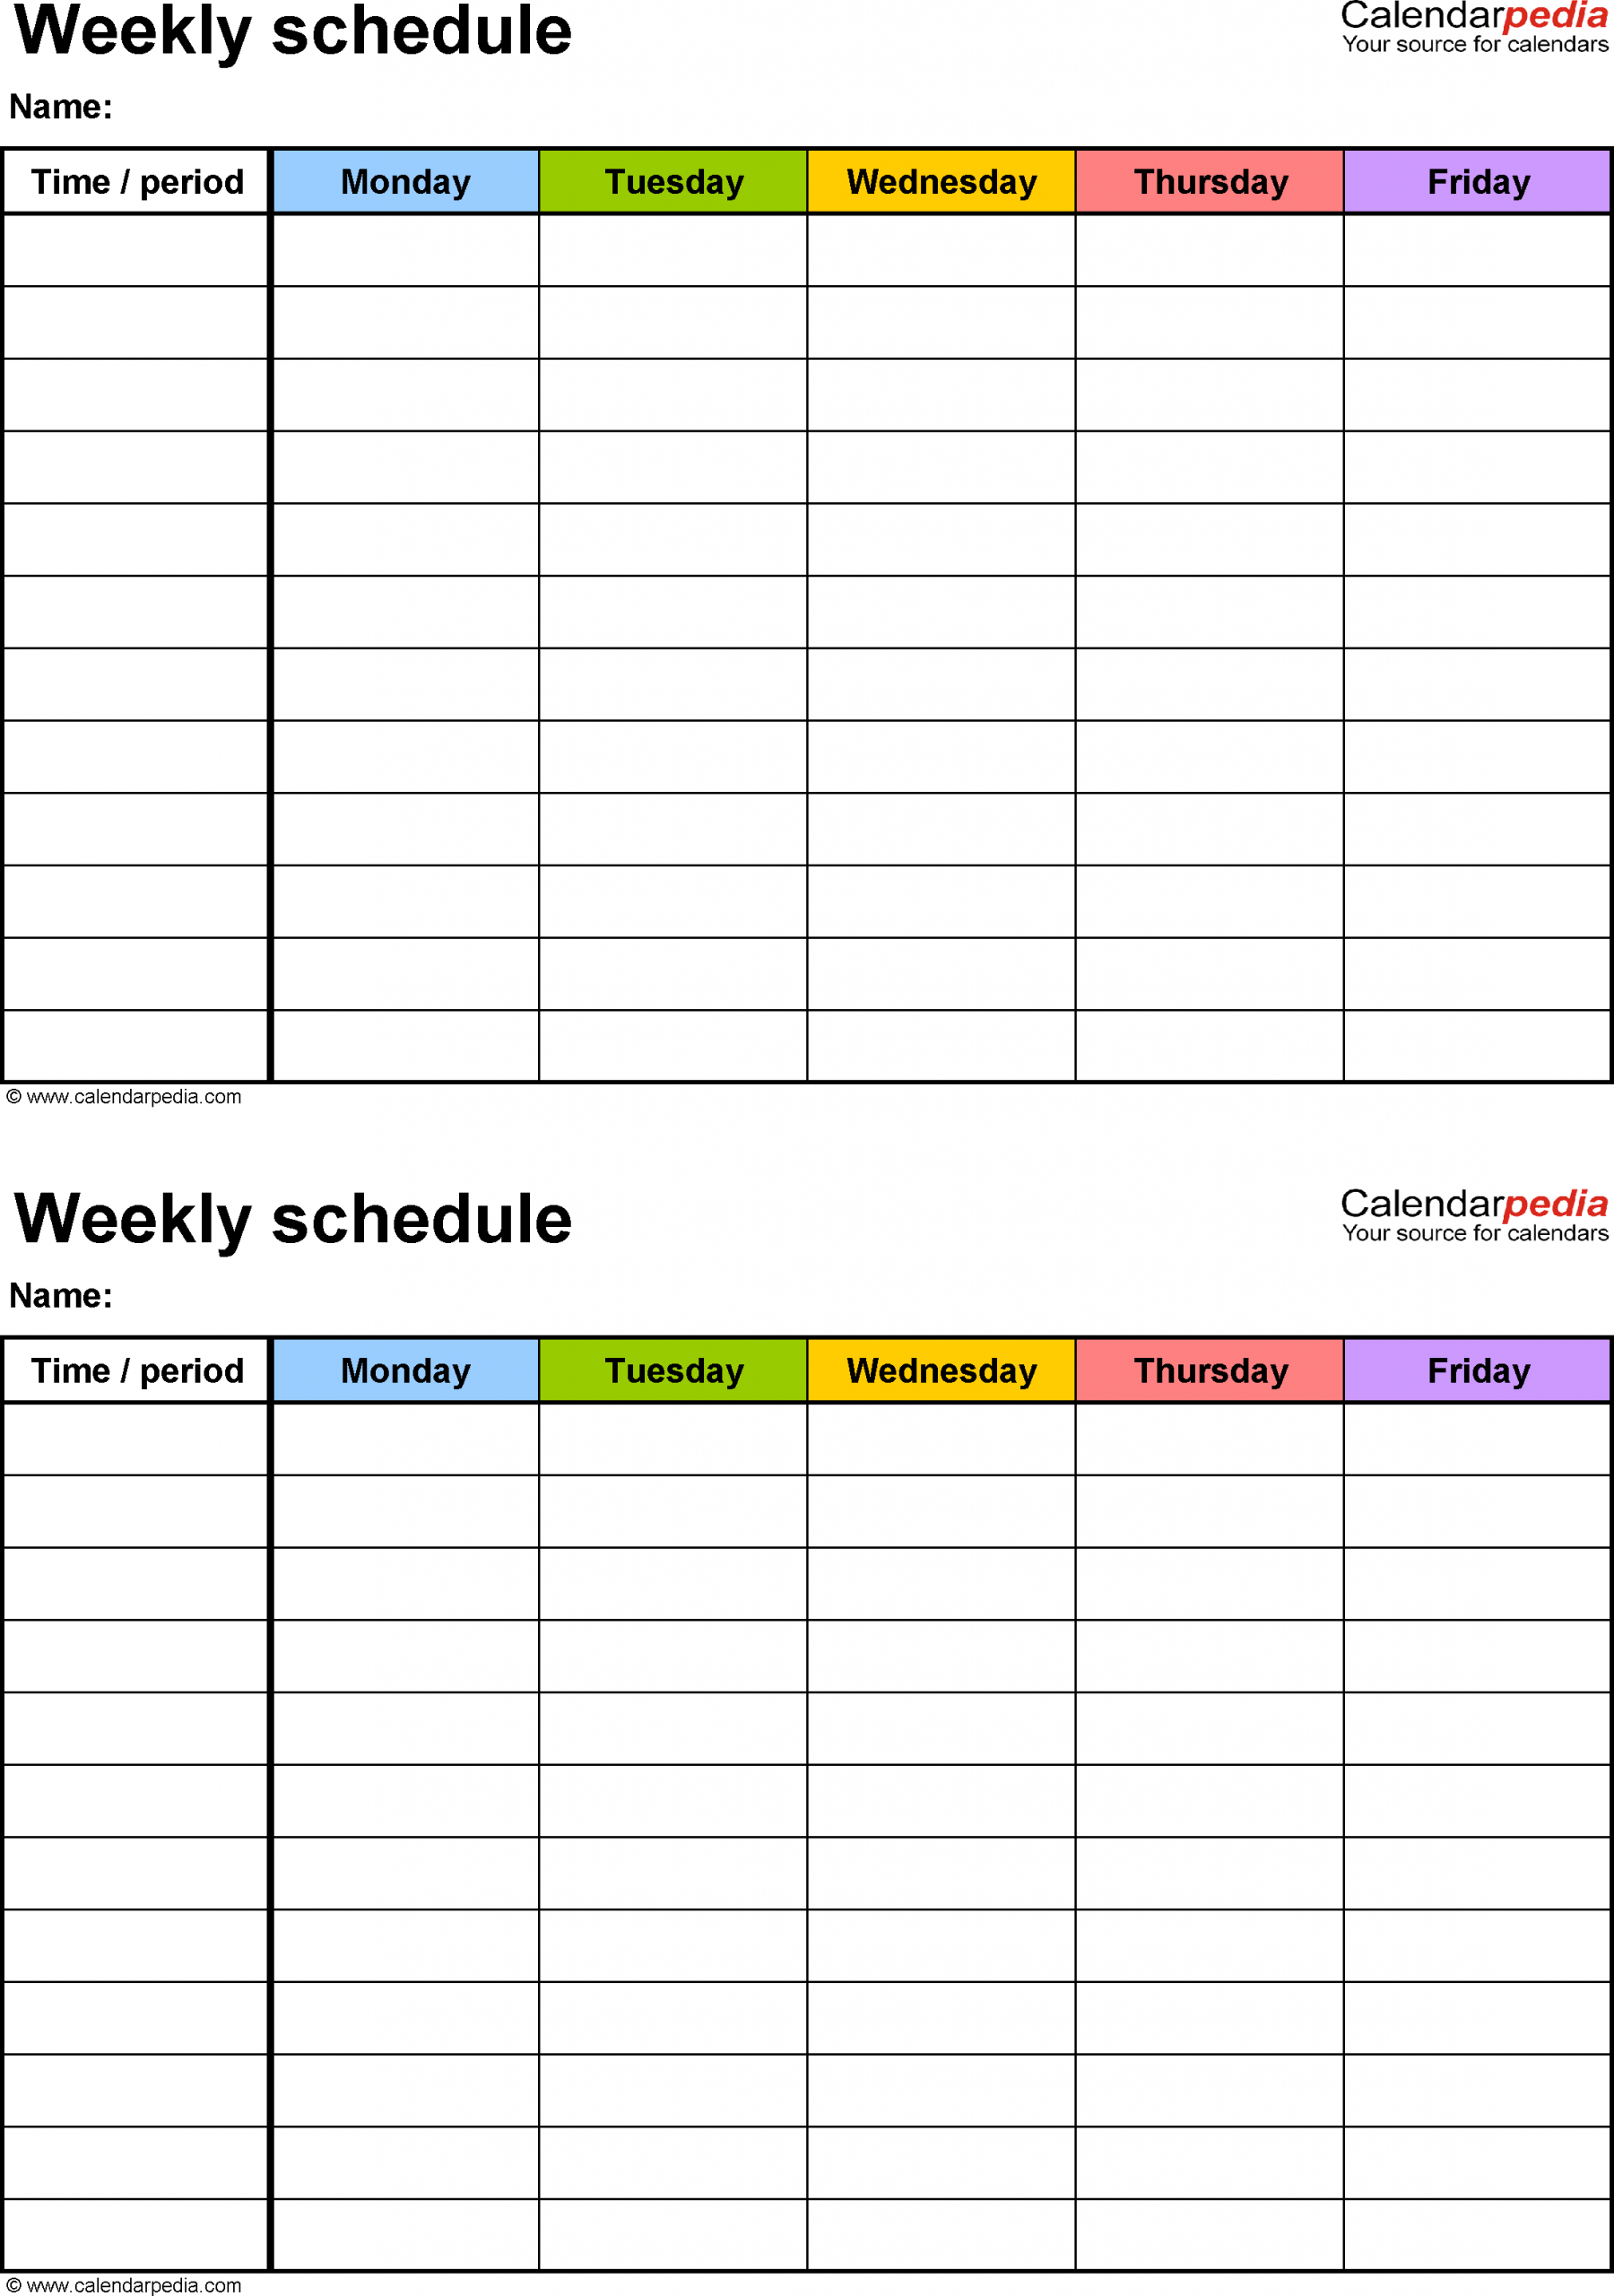 Weekly Schedule Template For Pdf Version 3: 2 Schedules On Mon Fri Calendar Template